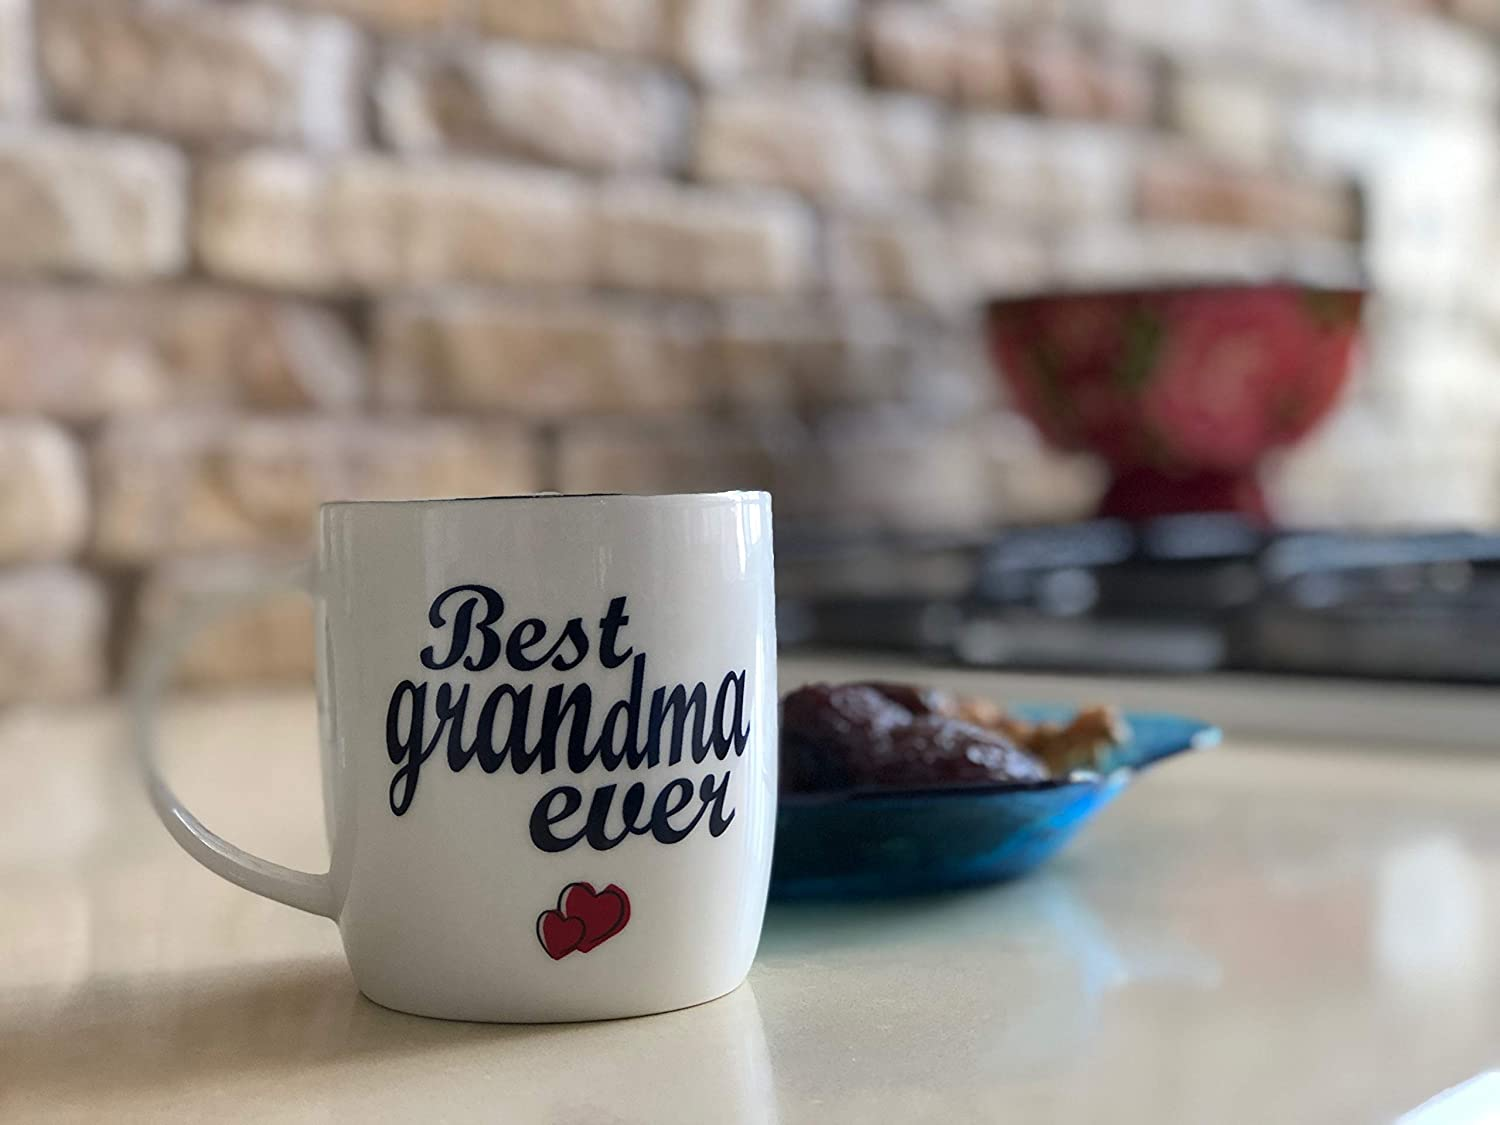 Perfect Christmas Day Presents 2 Set Gift Cups V1 Grandad Gifts Gifffted Grandparents Mugs Best Ever Grandma and Grandpa Coffee Mugs Gifts from Grandson or Granddaughter